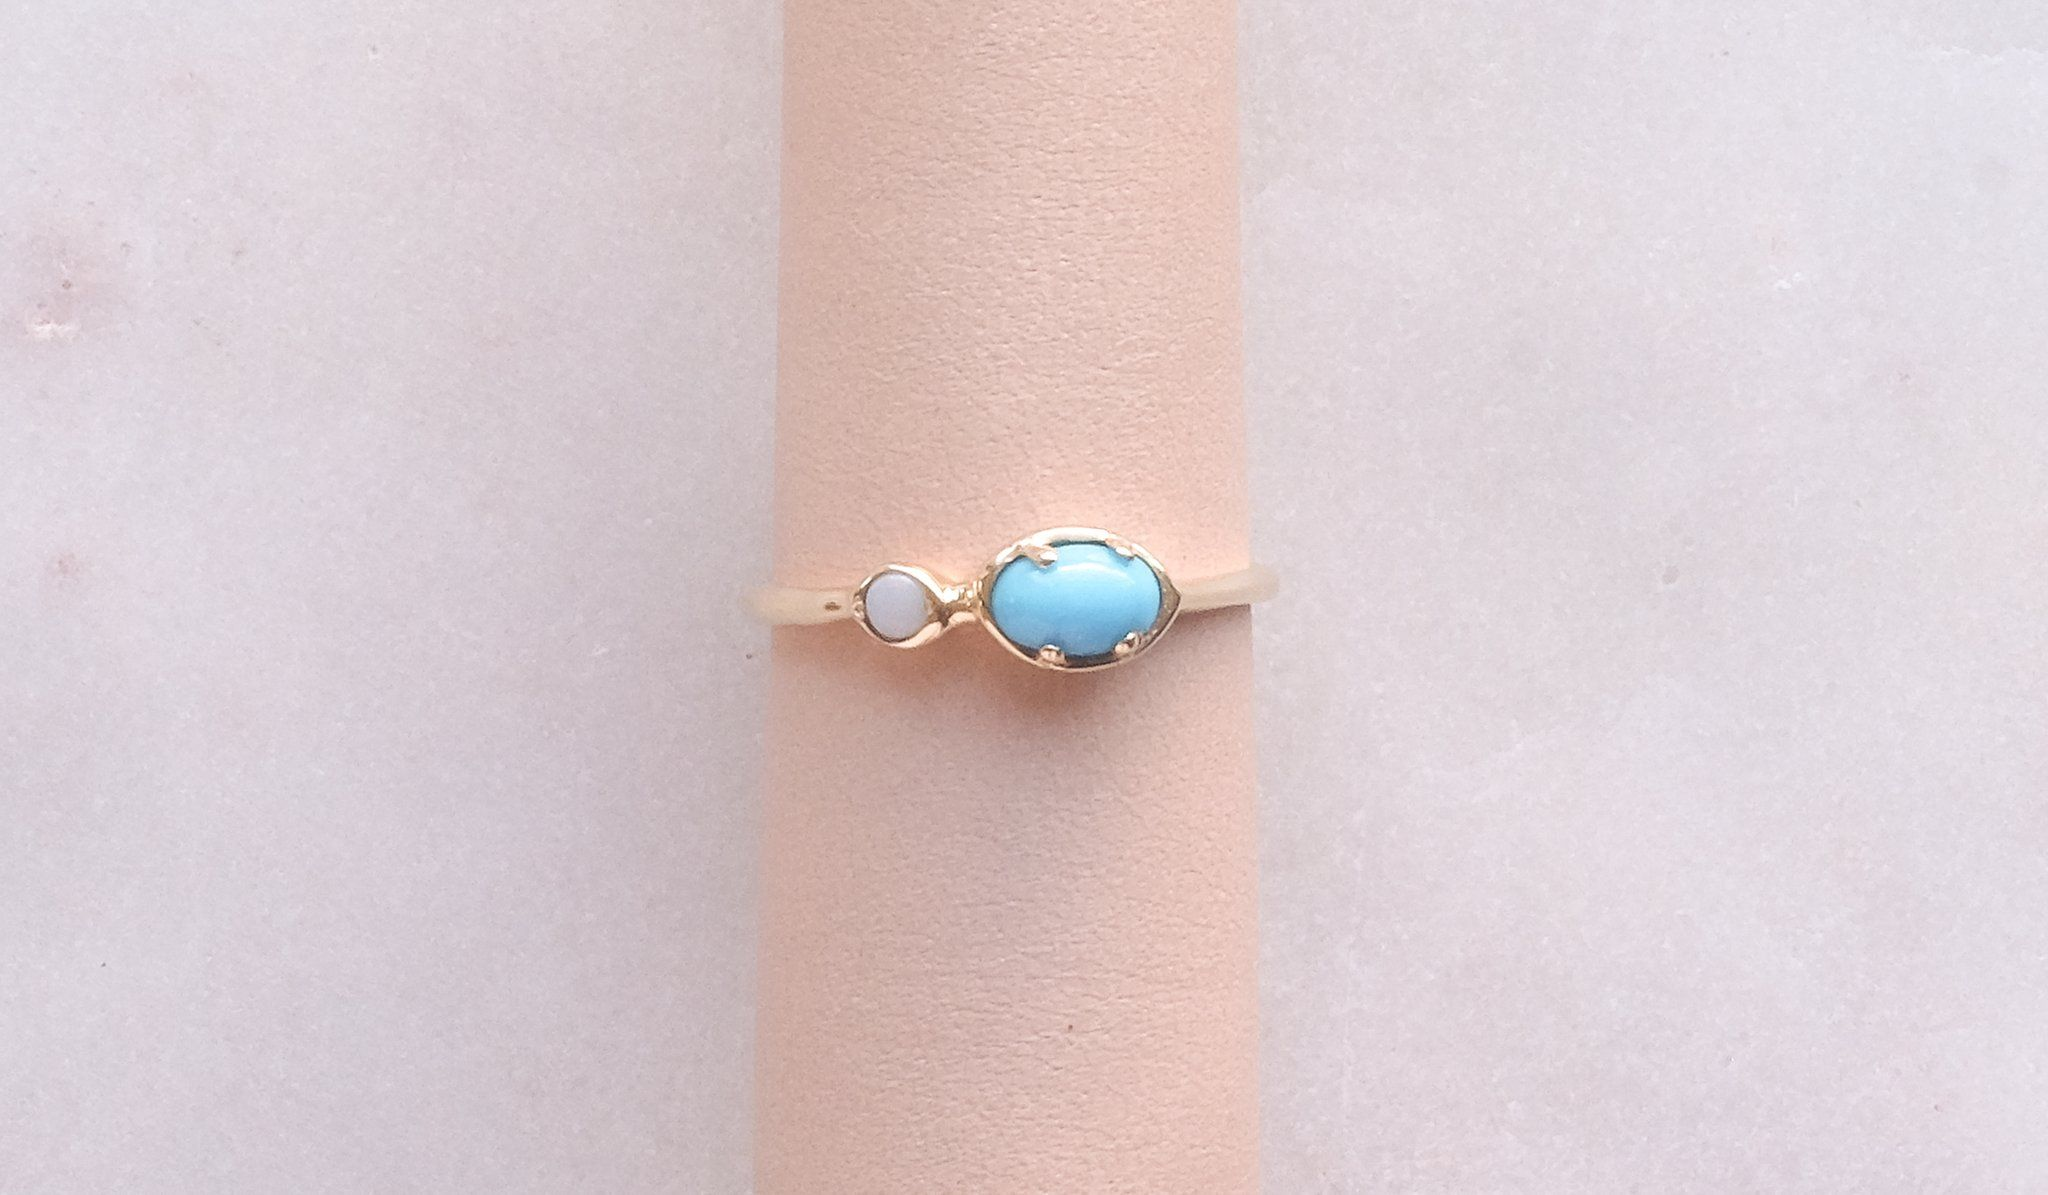 Kathryn Bentley Ellipse Dot Ring Turquoise Opal Jewelry Kathryn Bentley Spartan Shop Dot Ring Rings Turquoise Rings